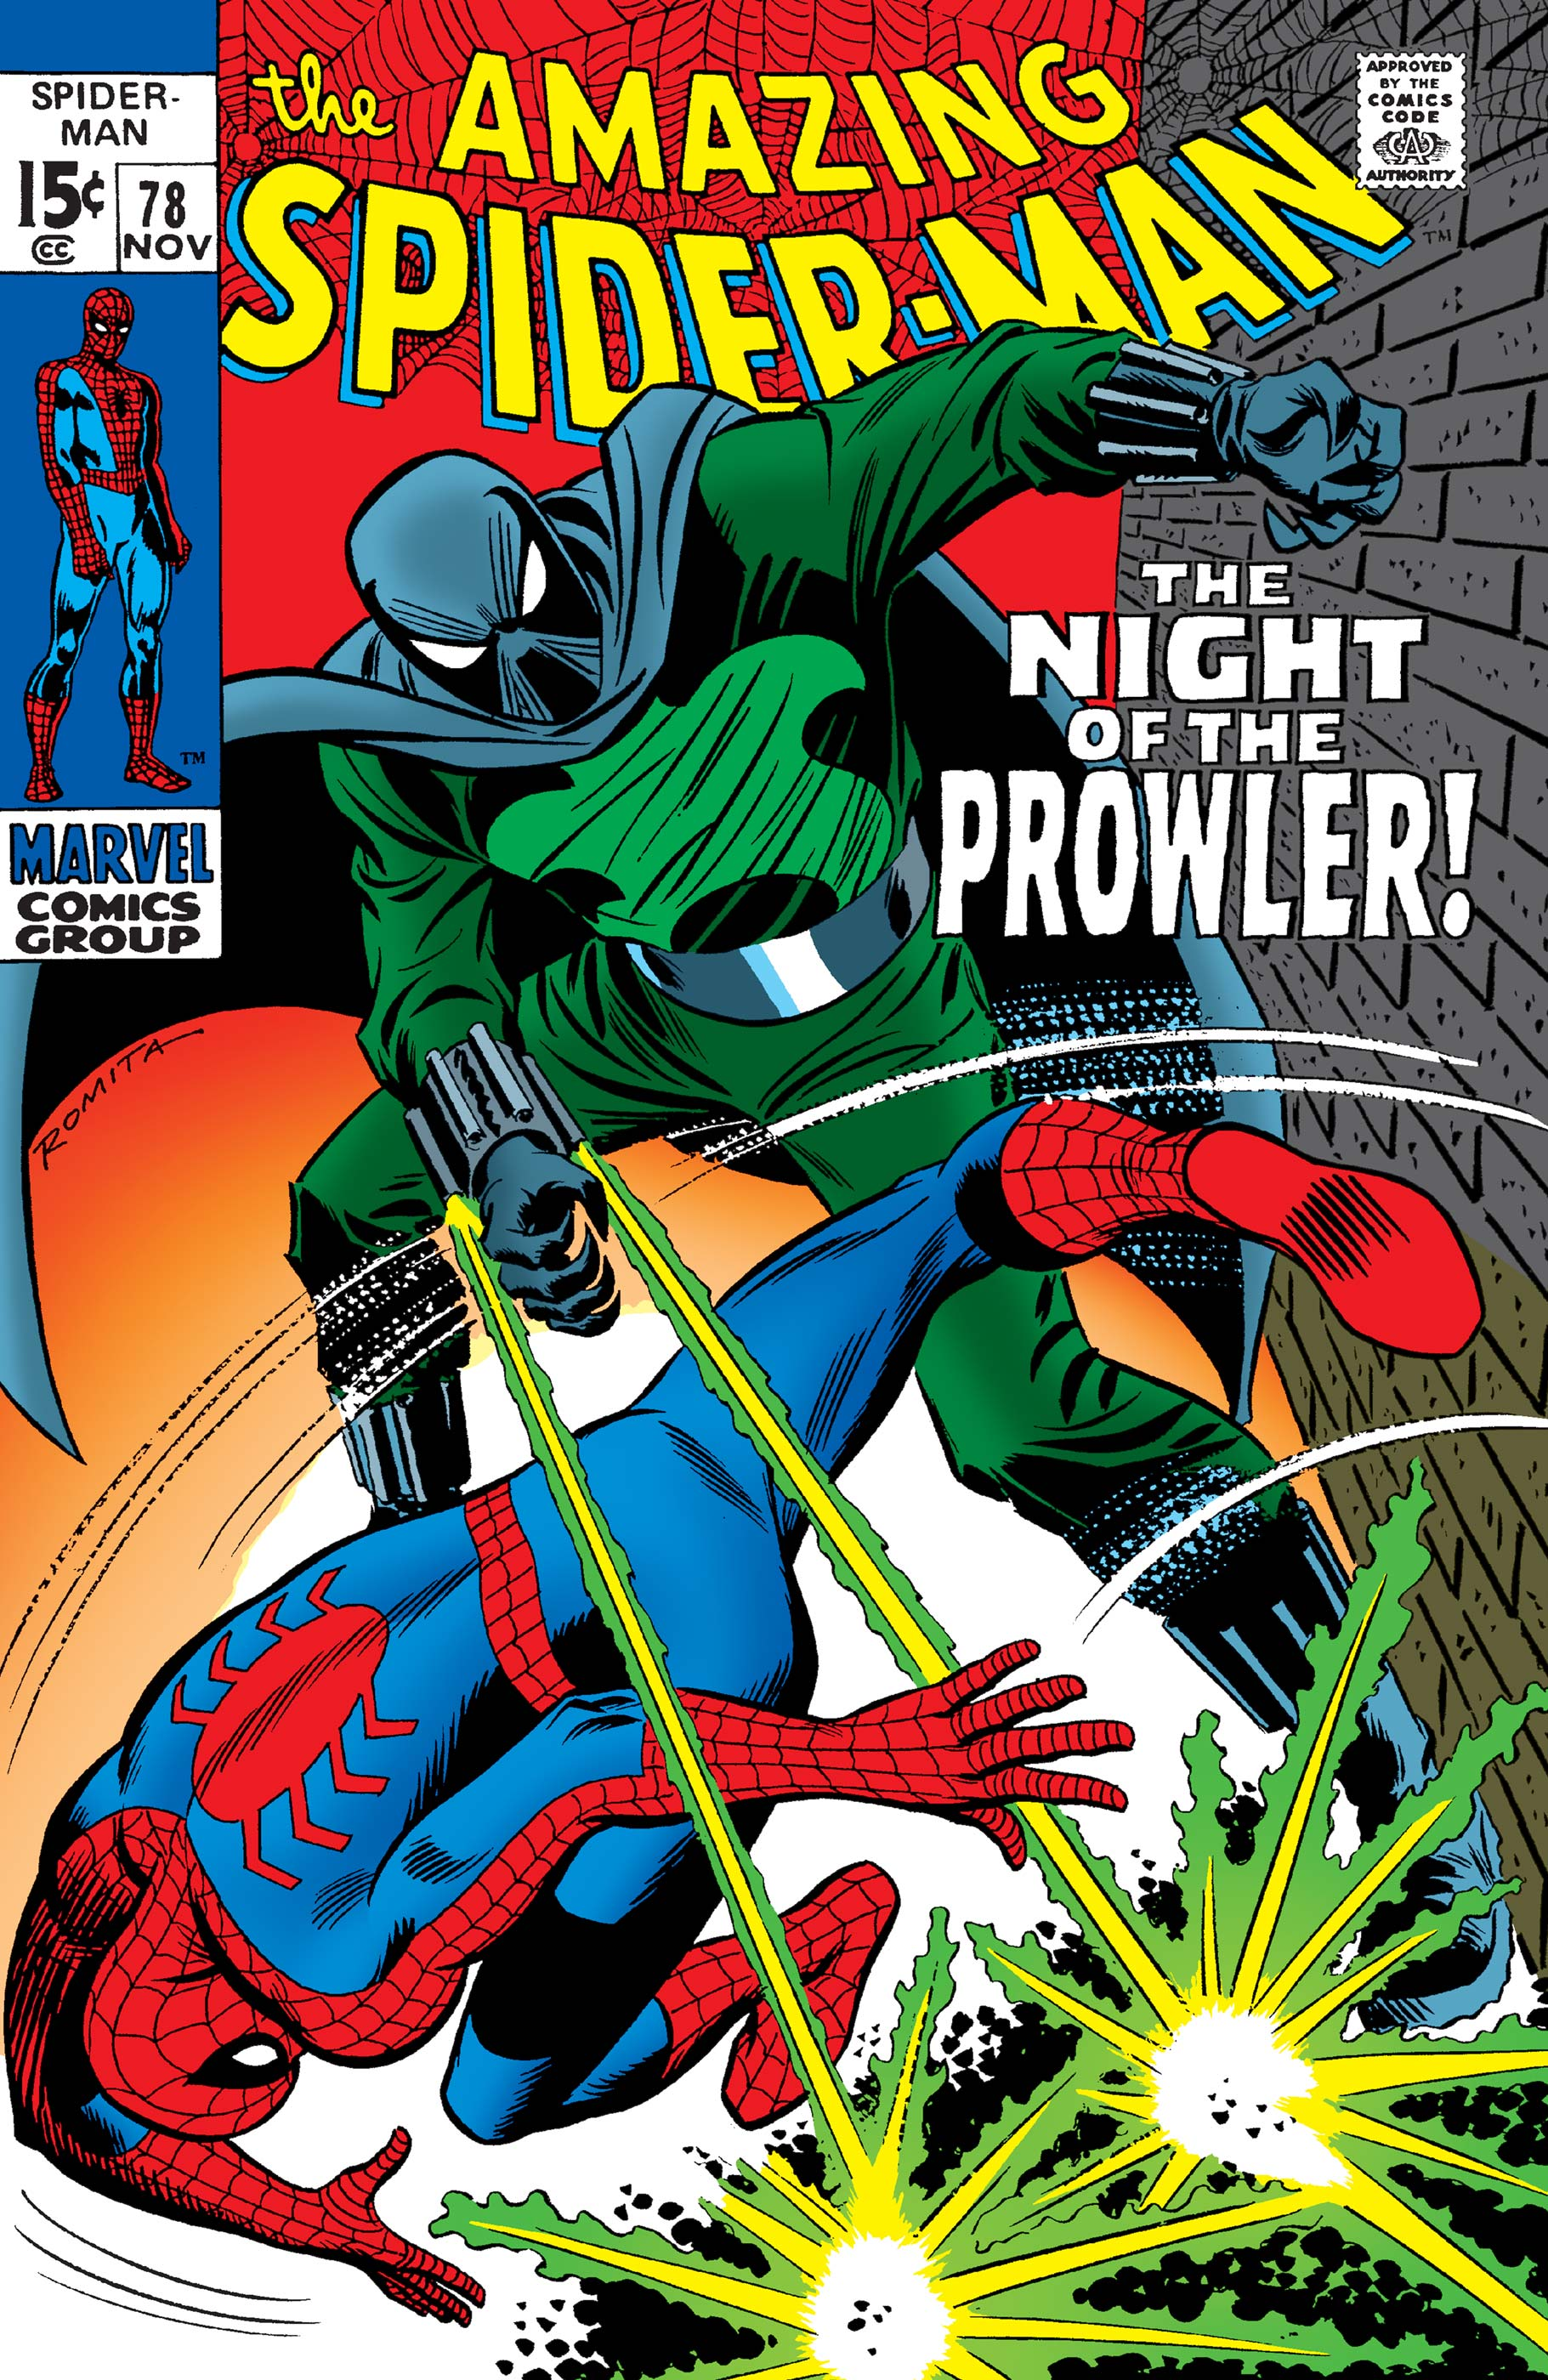 The Amazing Spider-Man (1963) #78